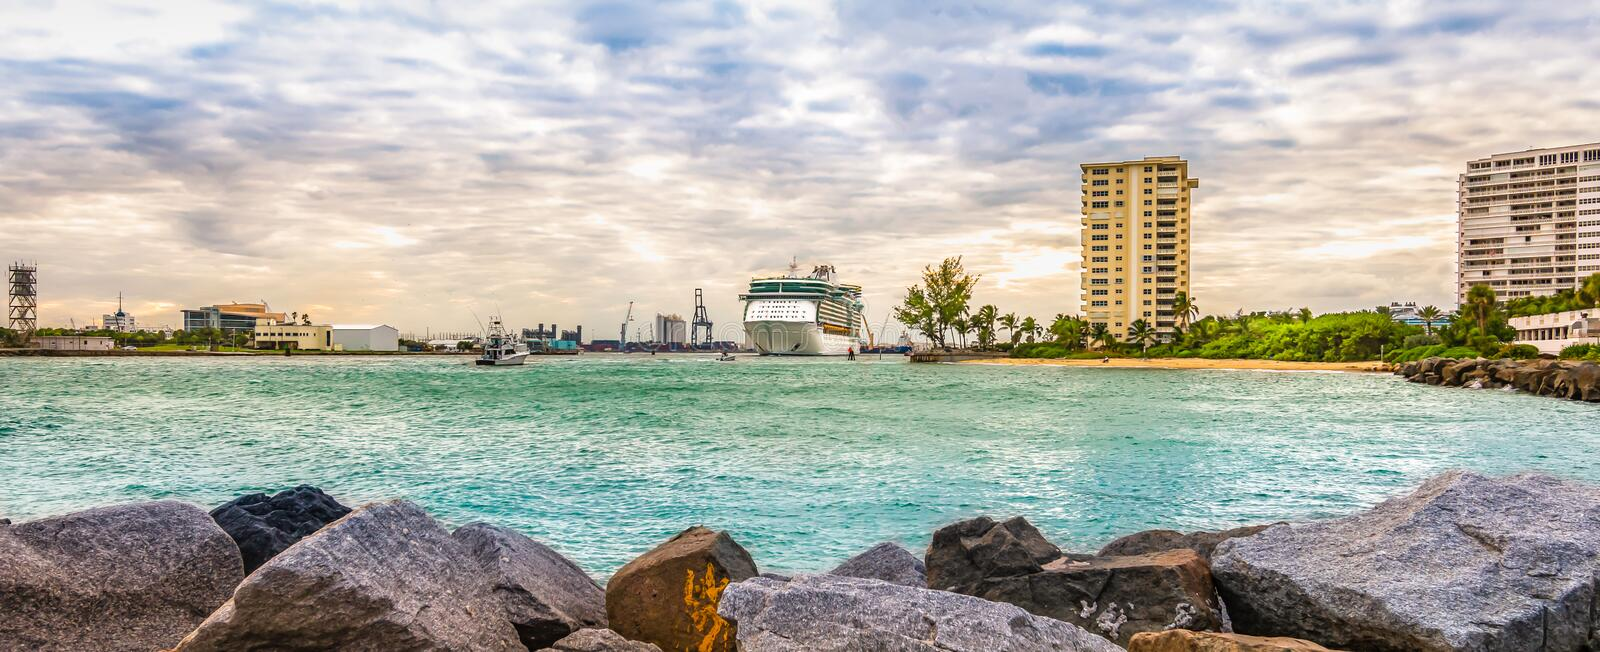 Panoramic landscape view of Port Everglades, Fort Lauderdale, Florida. Cruise ship leaving the harbor. royalty free stock photo